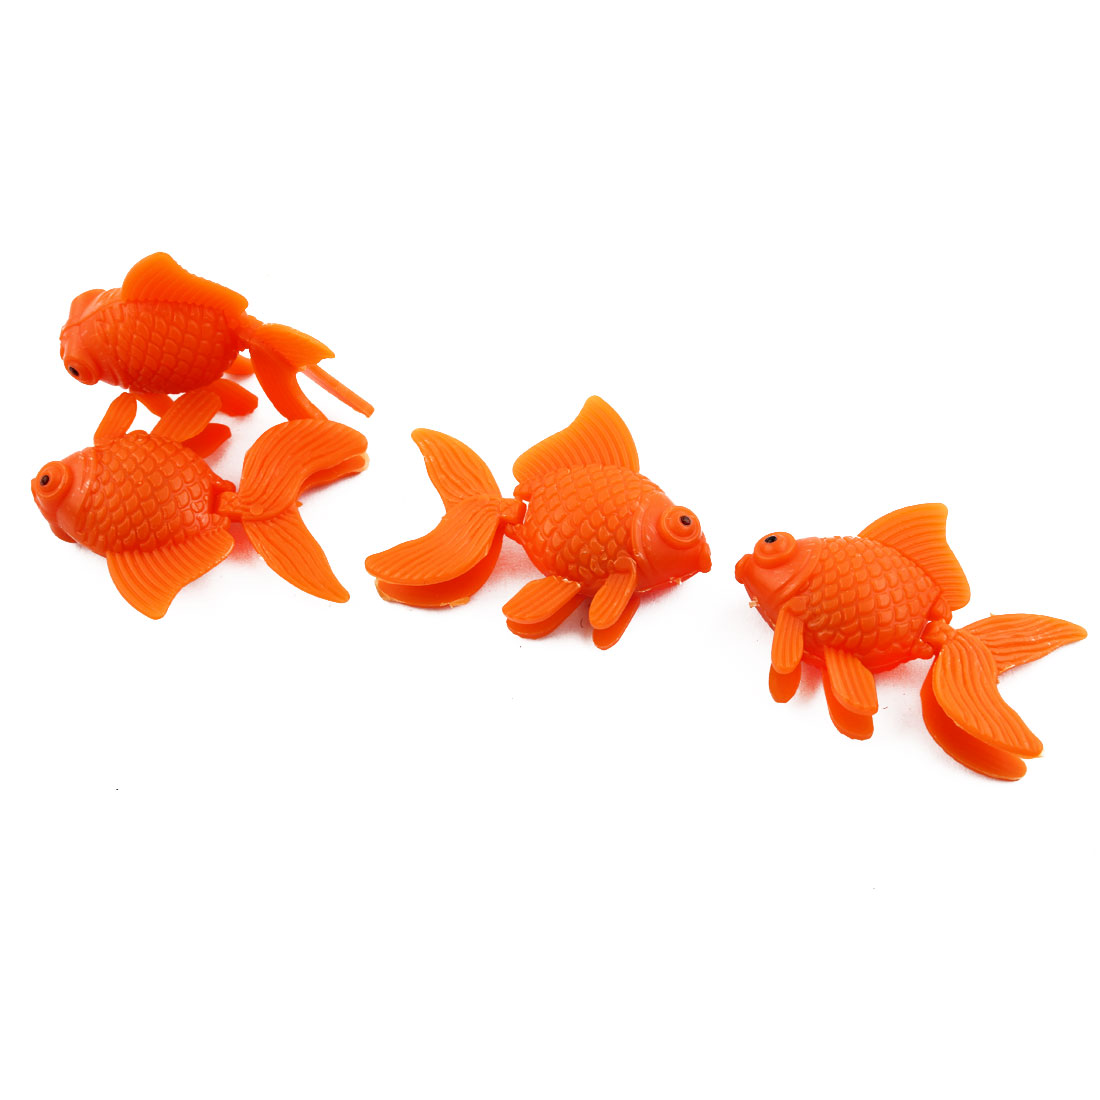 Aquarium Plastic Simulated Floating Tropical Fish Ornaments Orange 4pcs